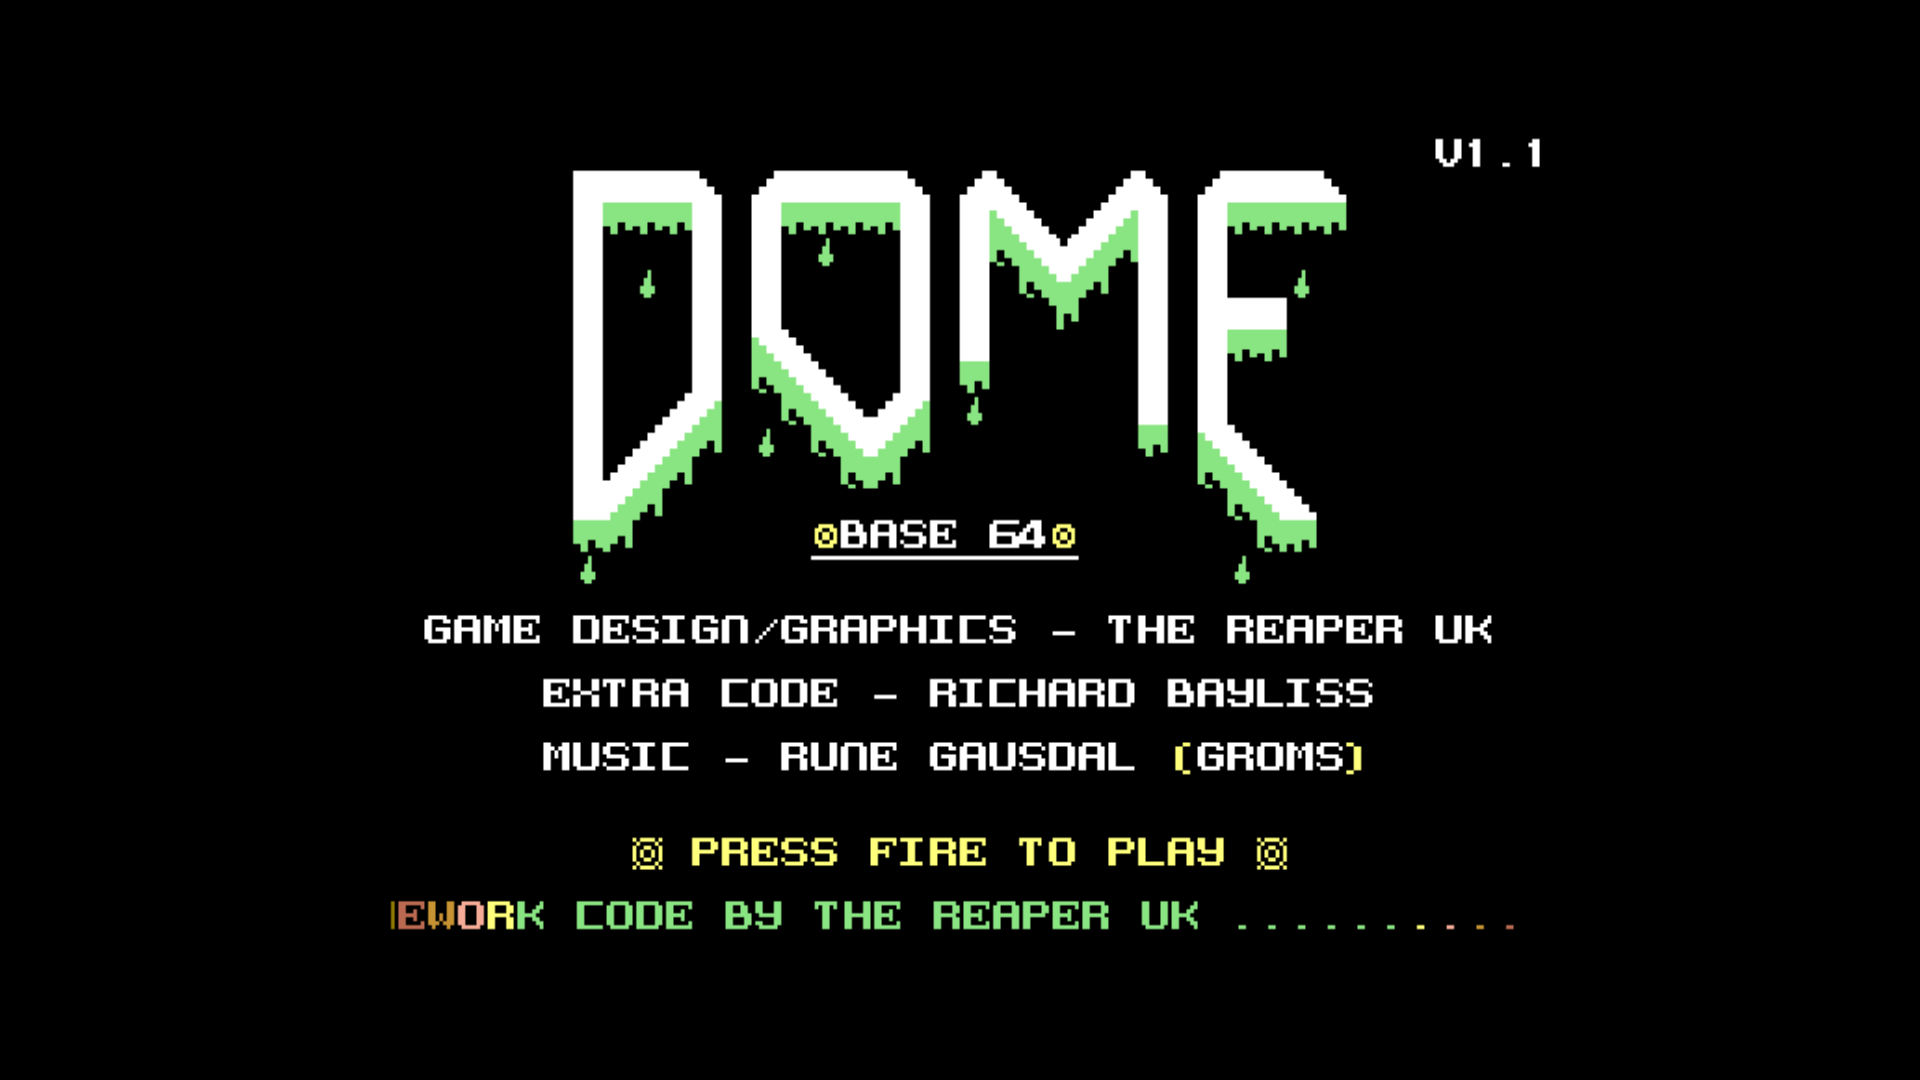 Dome Base 64 (C64)